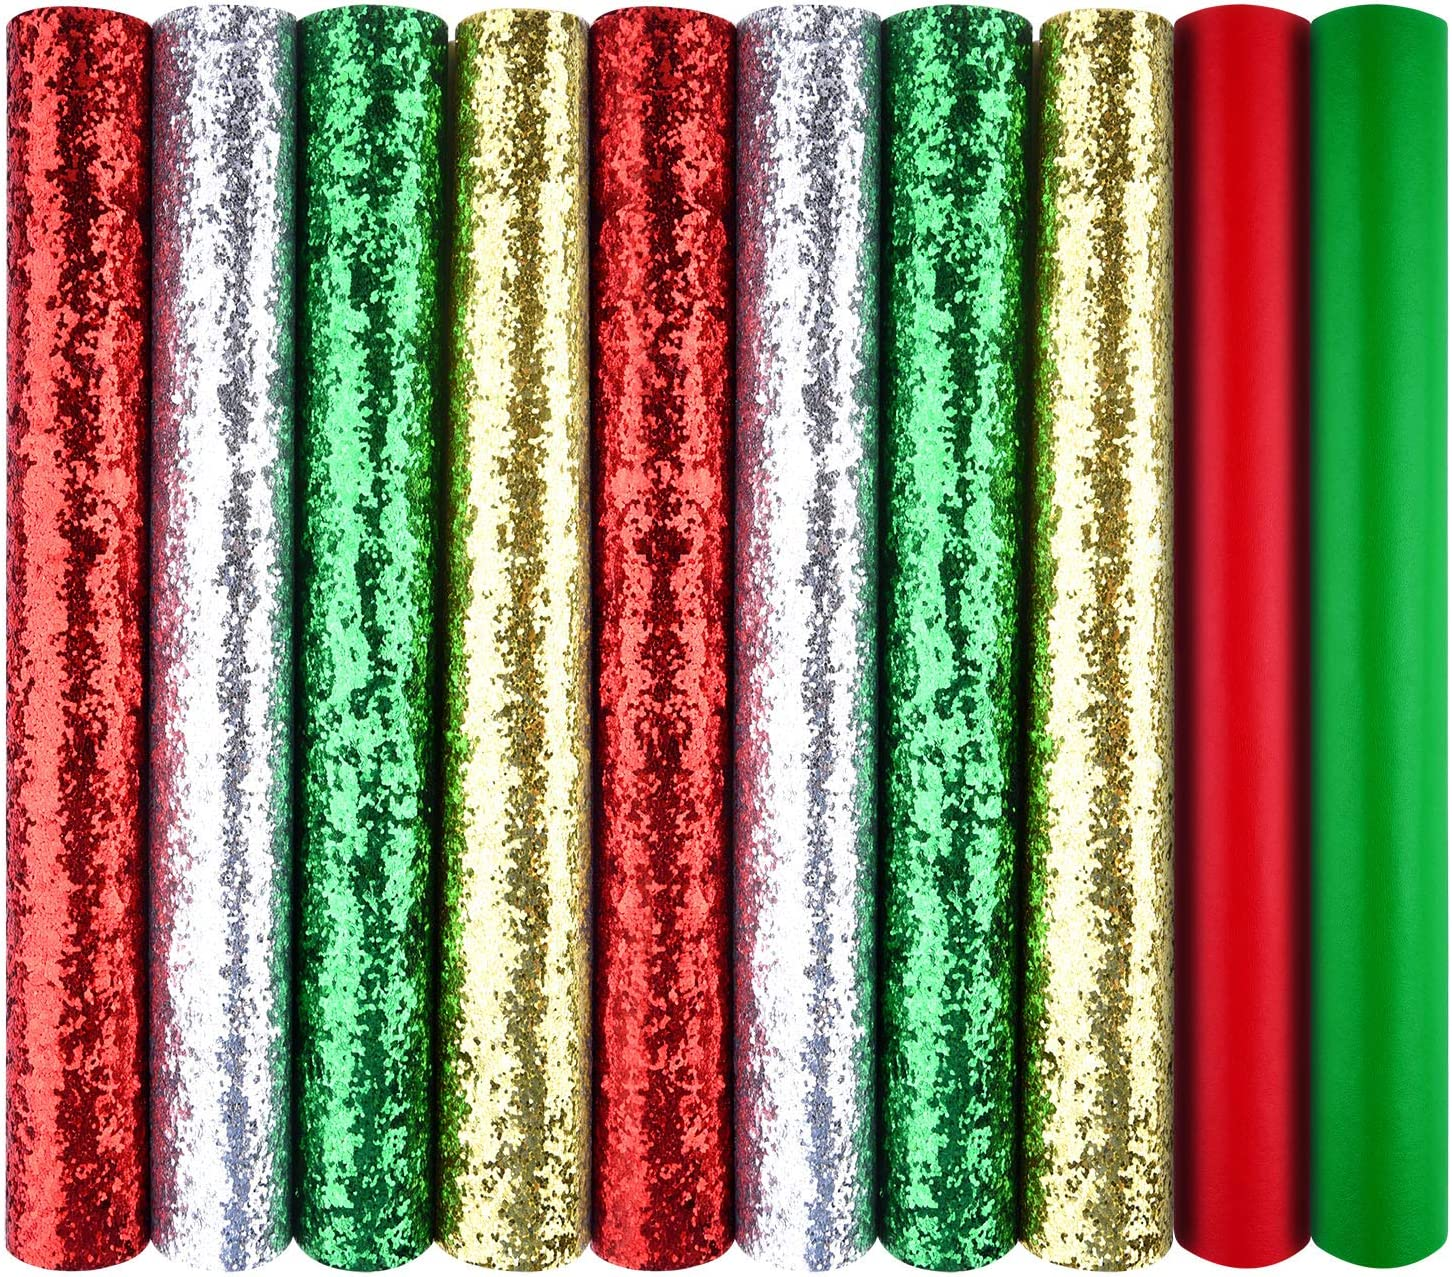 MIAHART 10 Pack Christmas Faux Leather 4 Fa Popular products Shining Today's only Colors Sheet